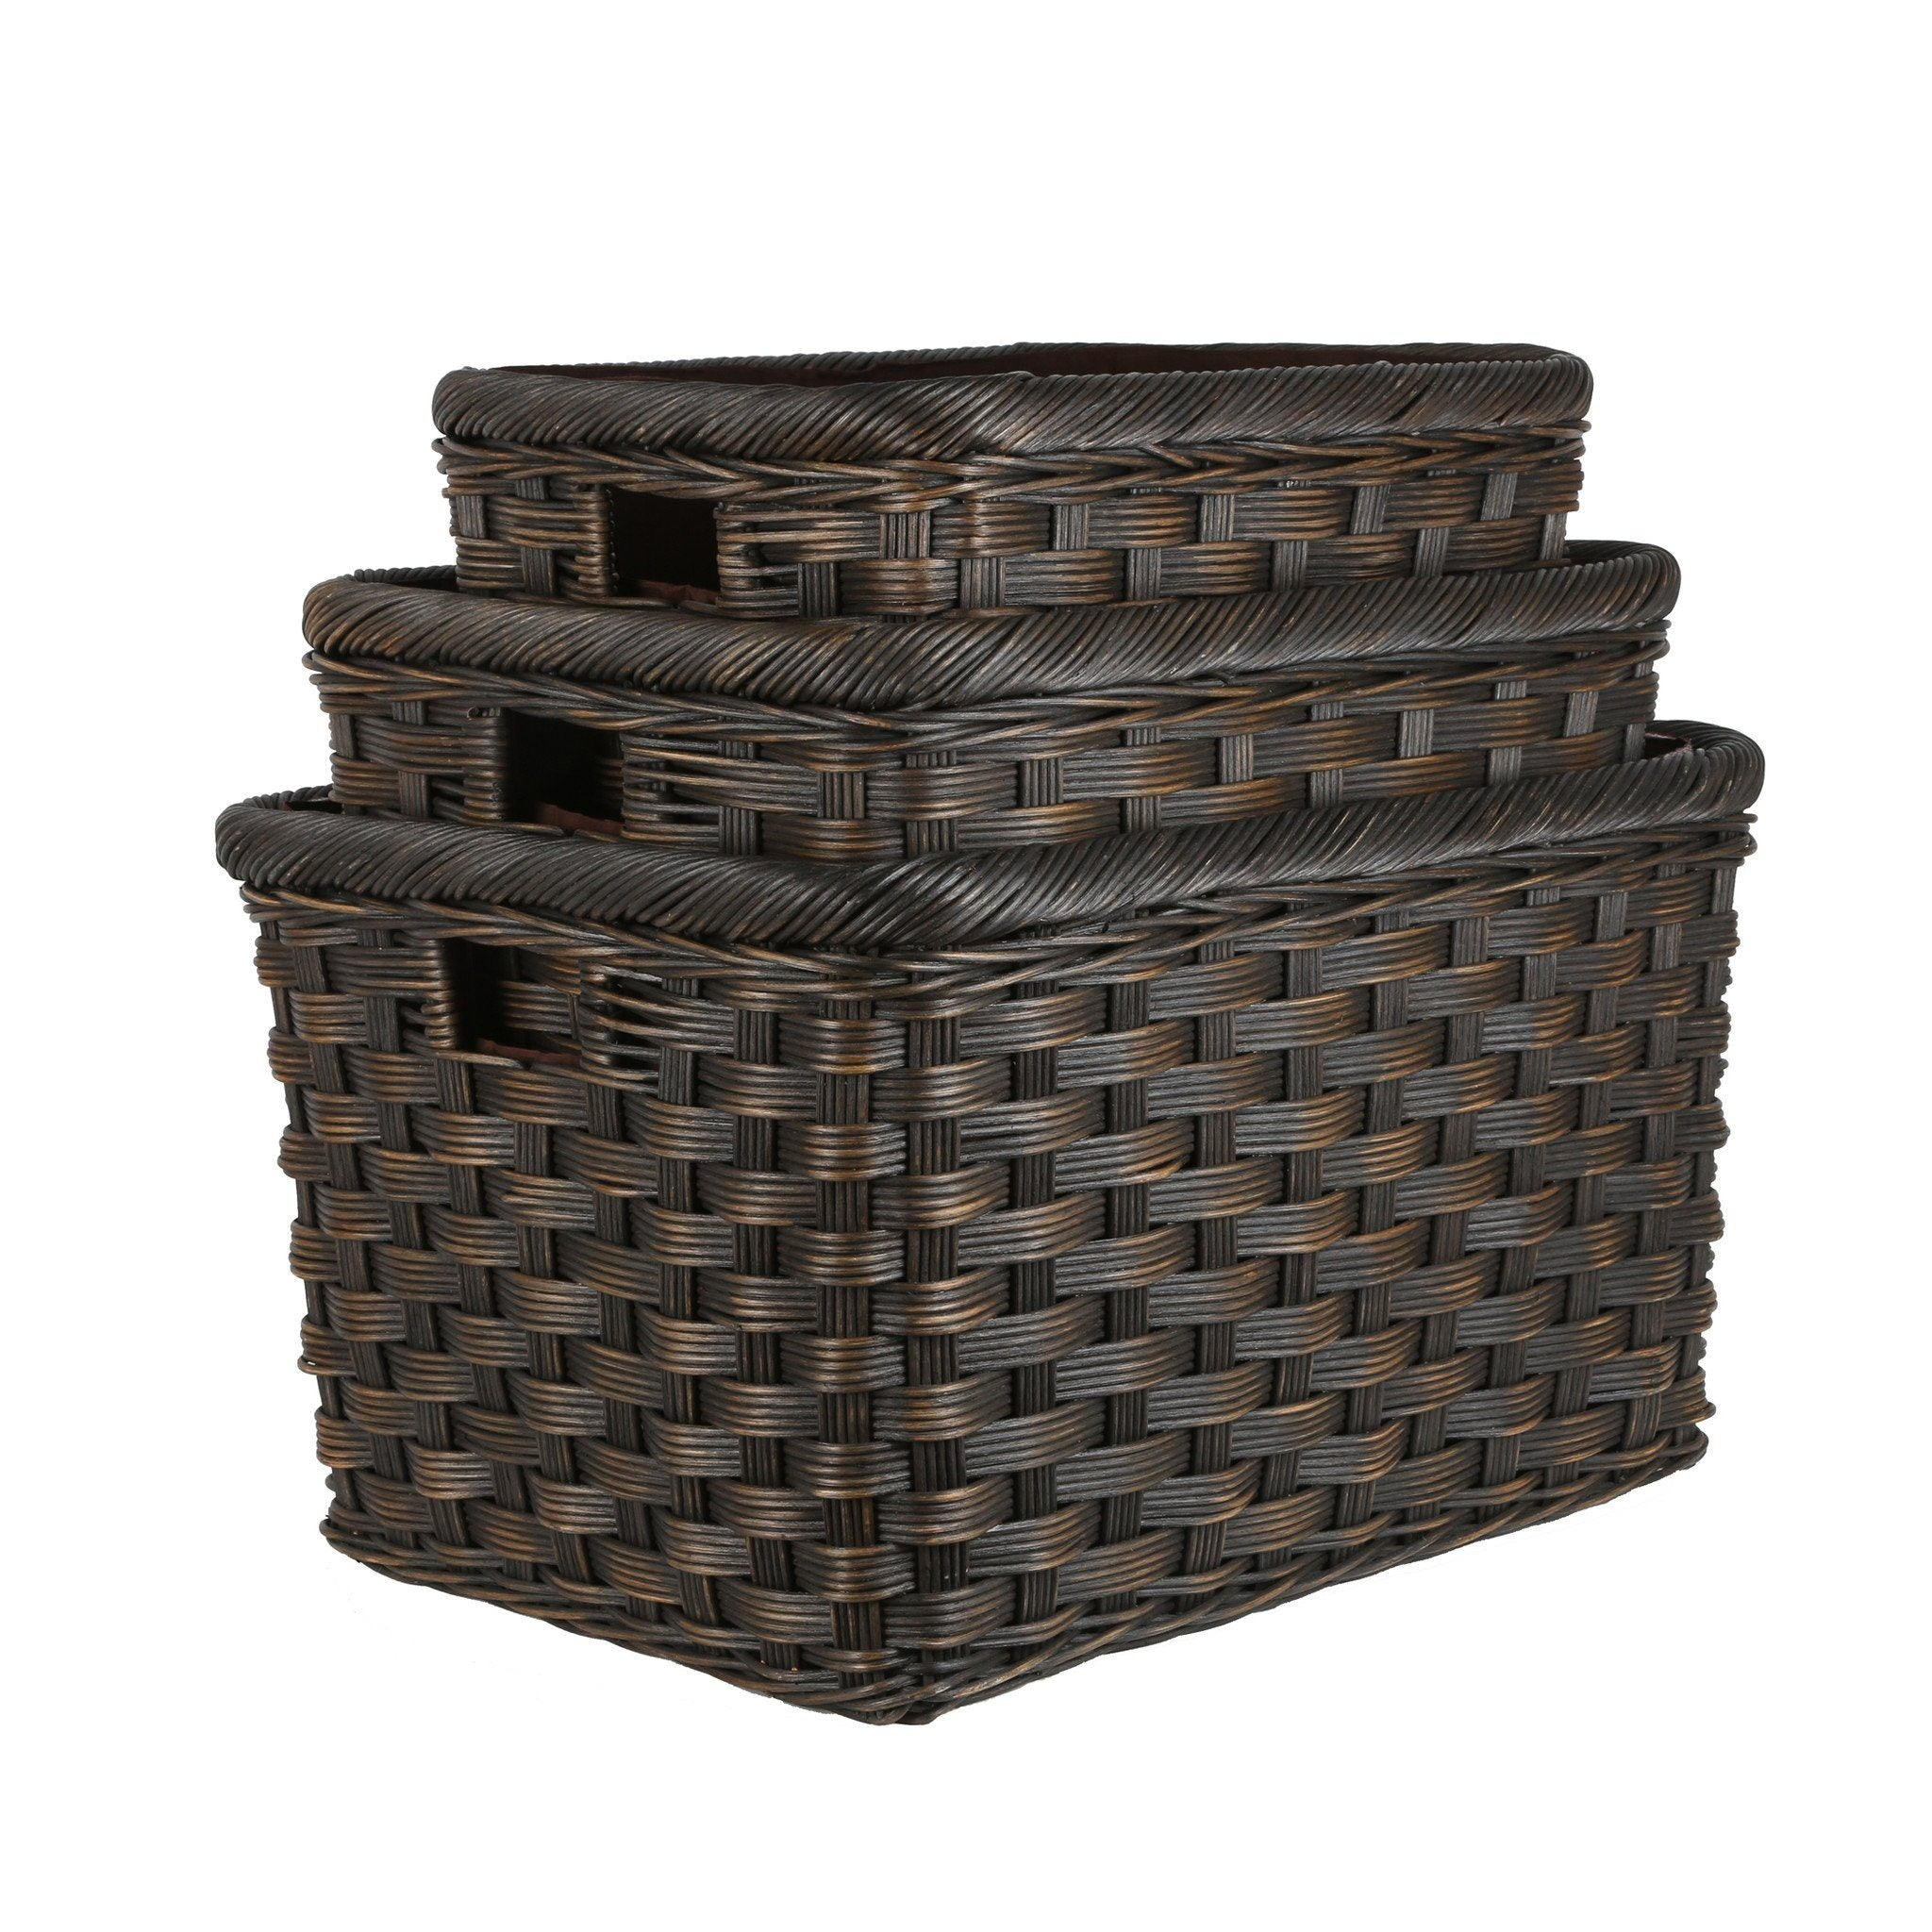 Jumbo Wicker Storage Basket In Antique Walnut Brown 3 Sizes Shown From The  Basket Lady ...